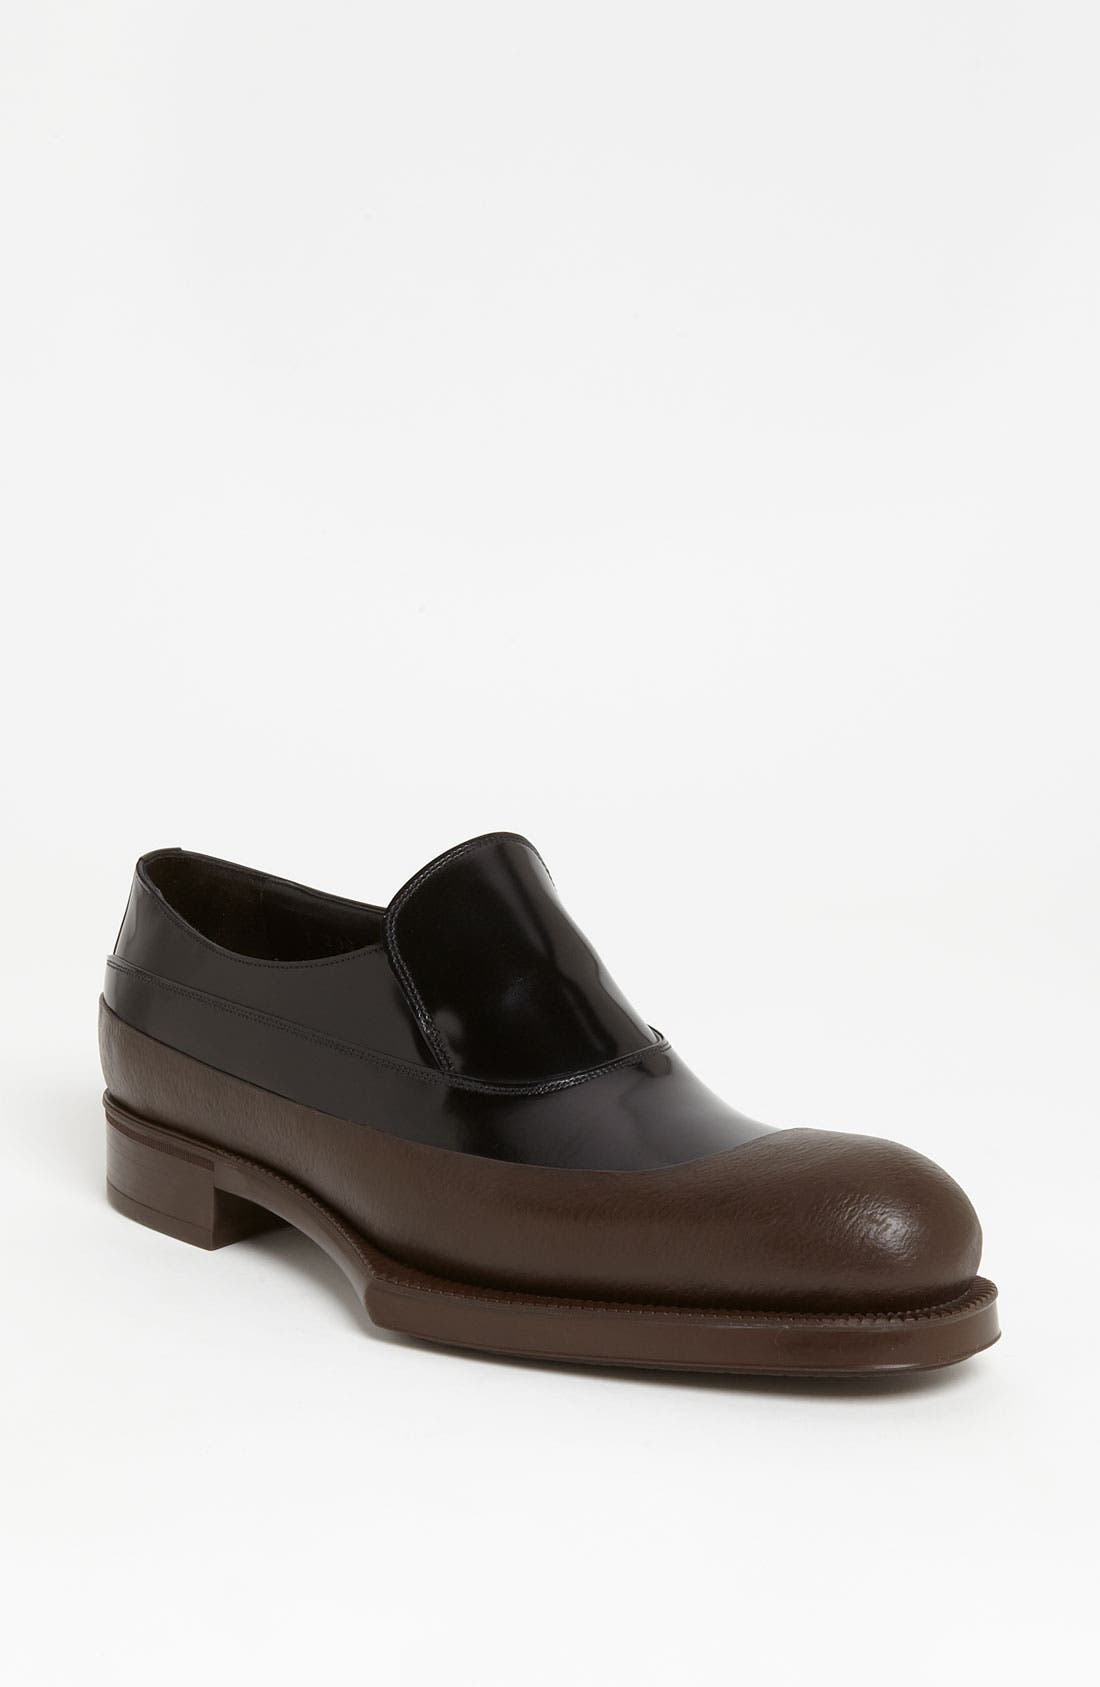 Alternate Image 1 Selected - Prada Rubber Tipped Loafer